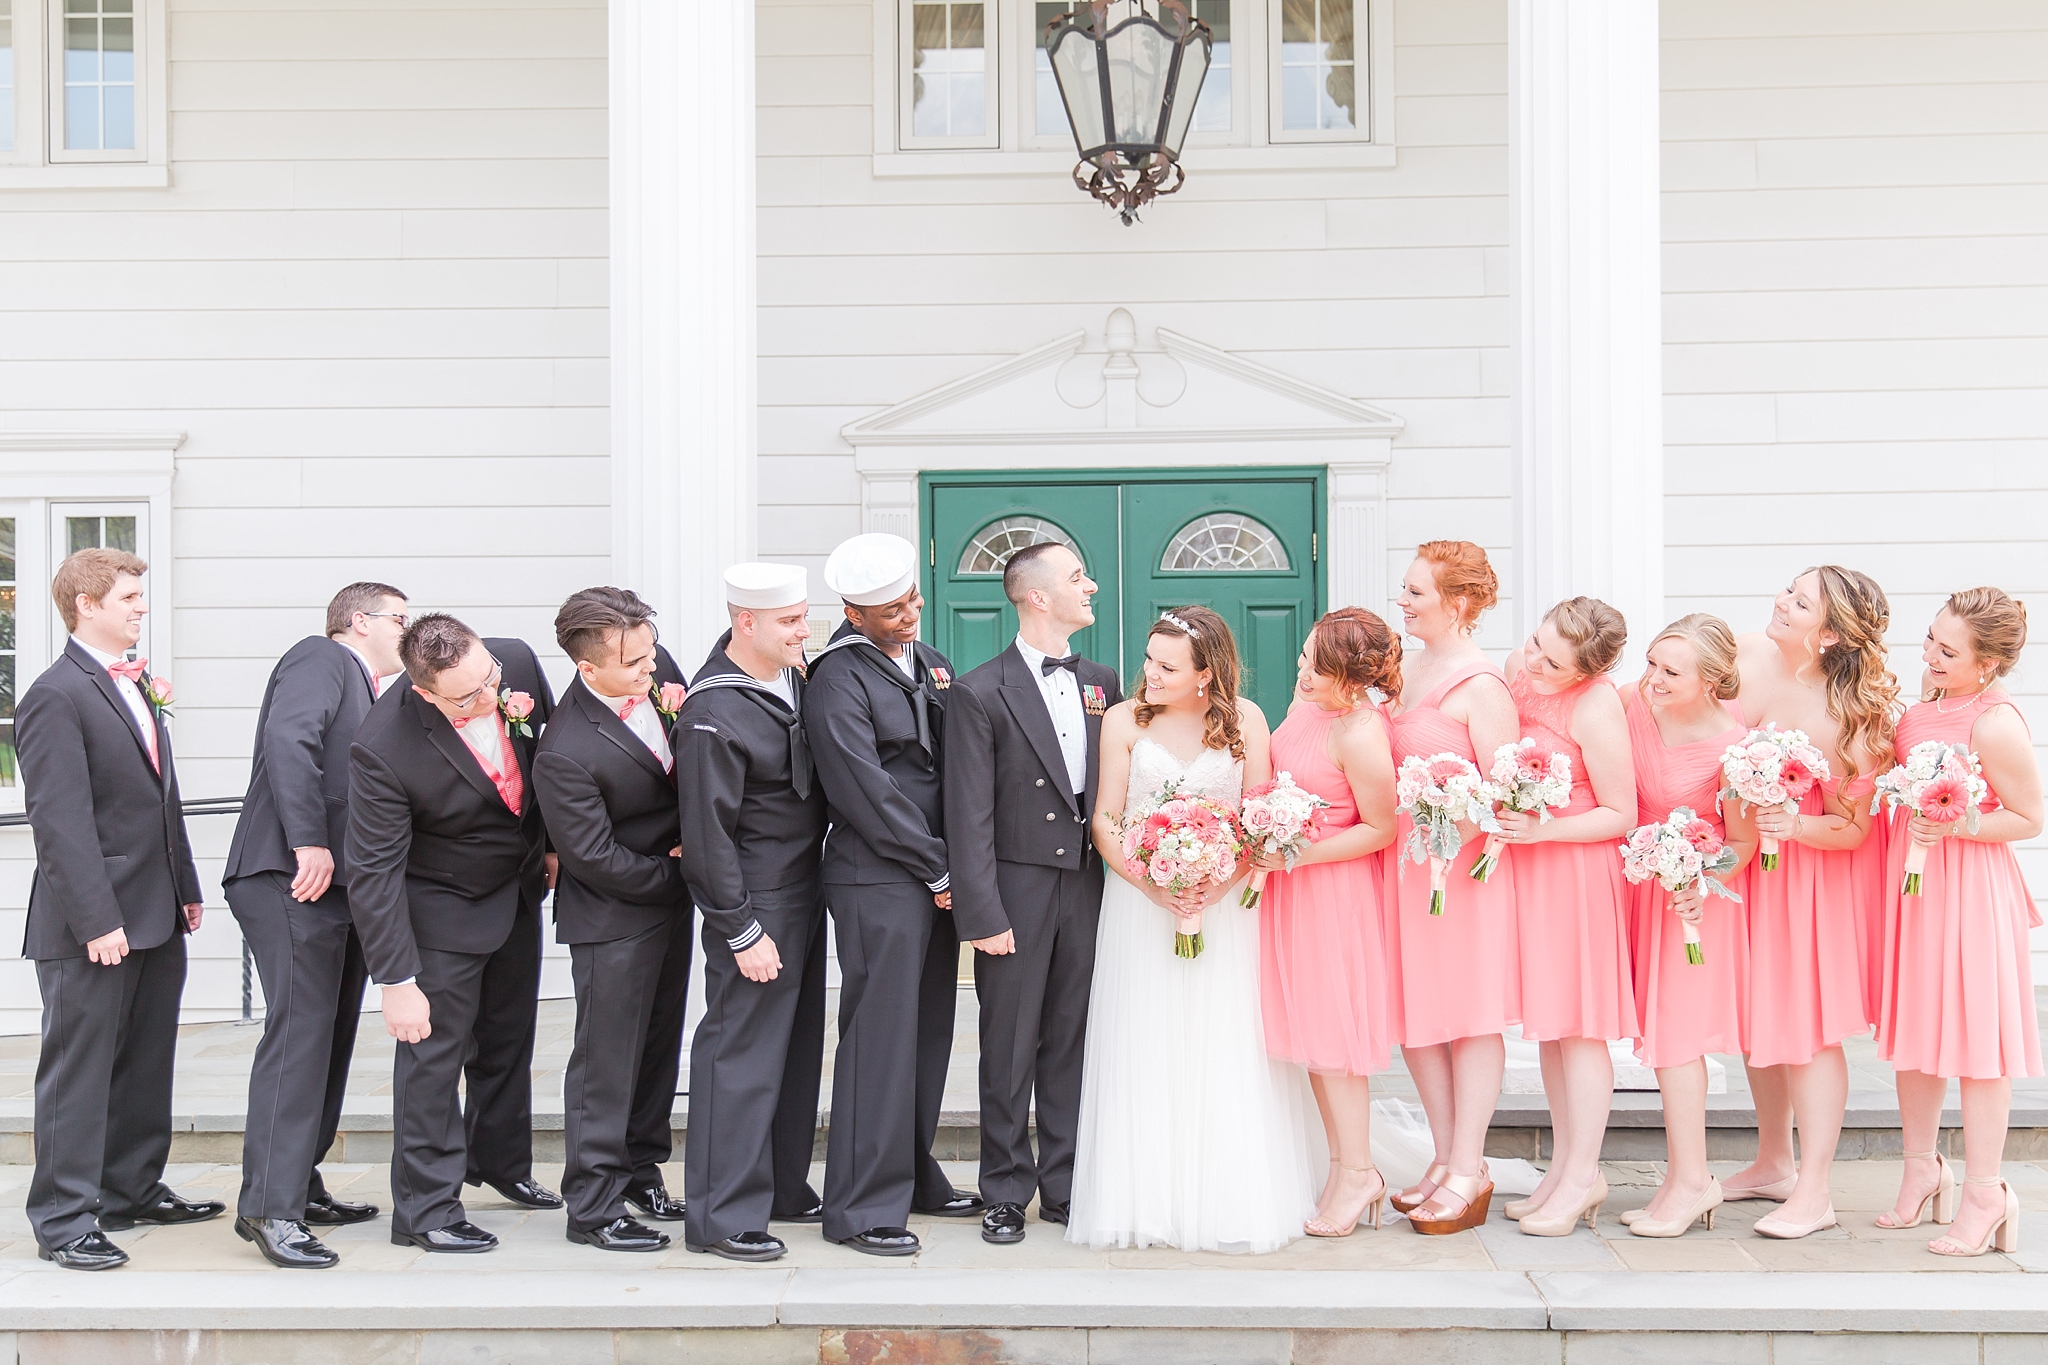 romantic-artful-candid-wedding-photos-in-st-clair-shores-at-the-white-house-wedding-chapel-by-courtney-carolyn-photography_0051.jpg